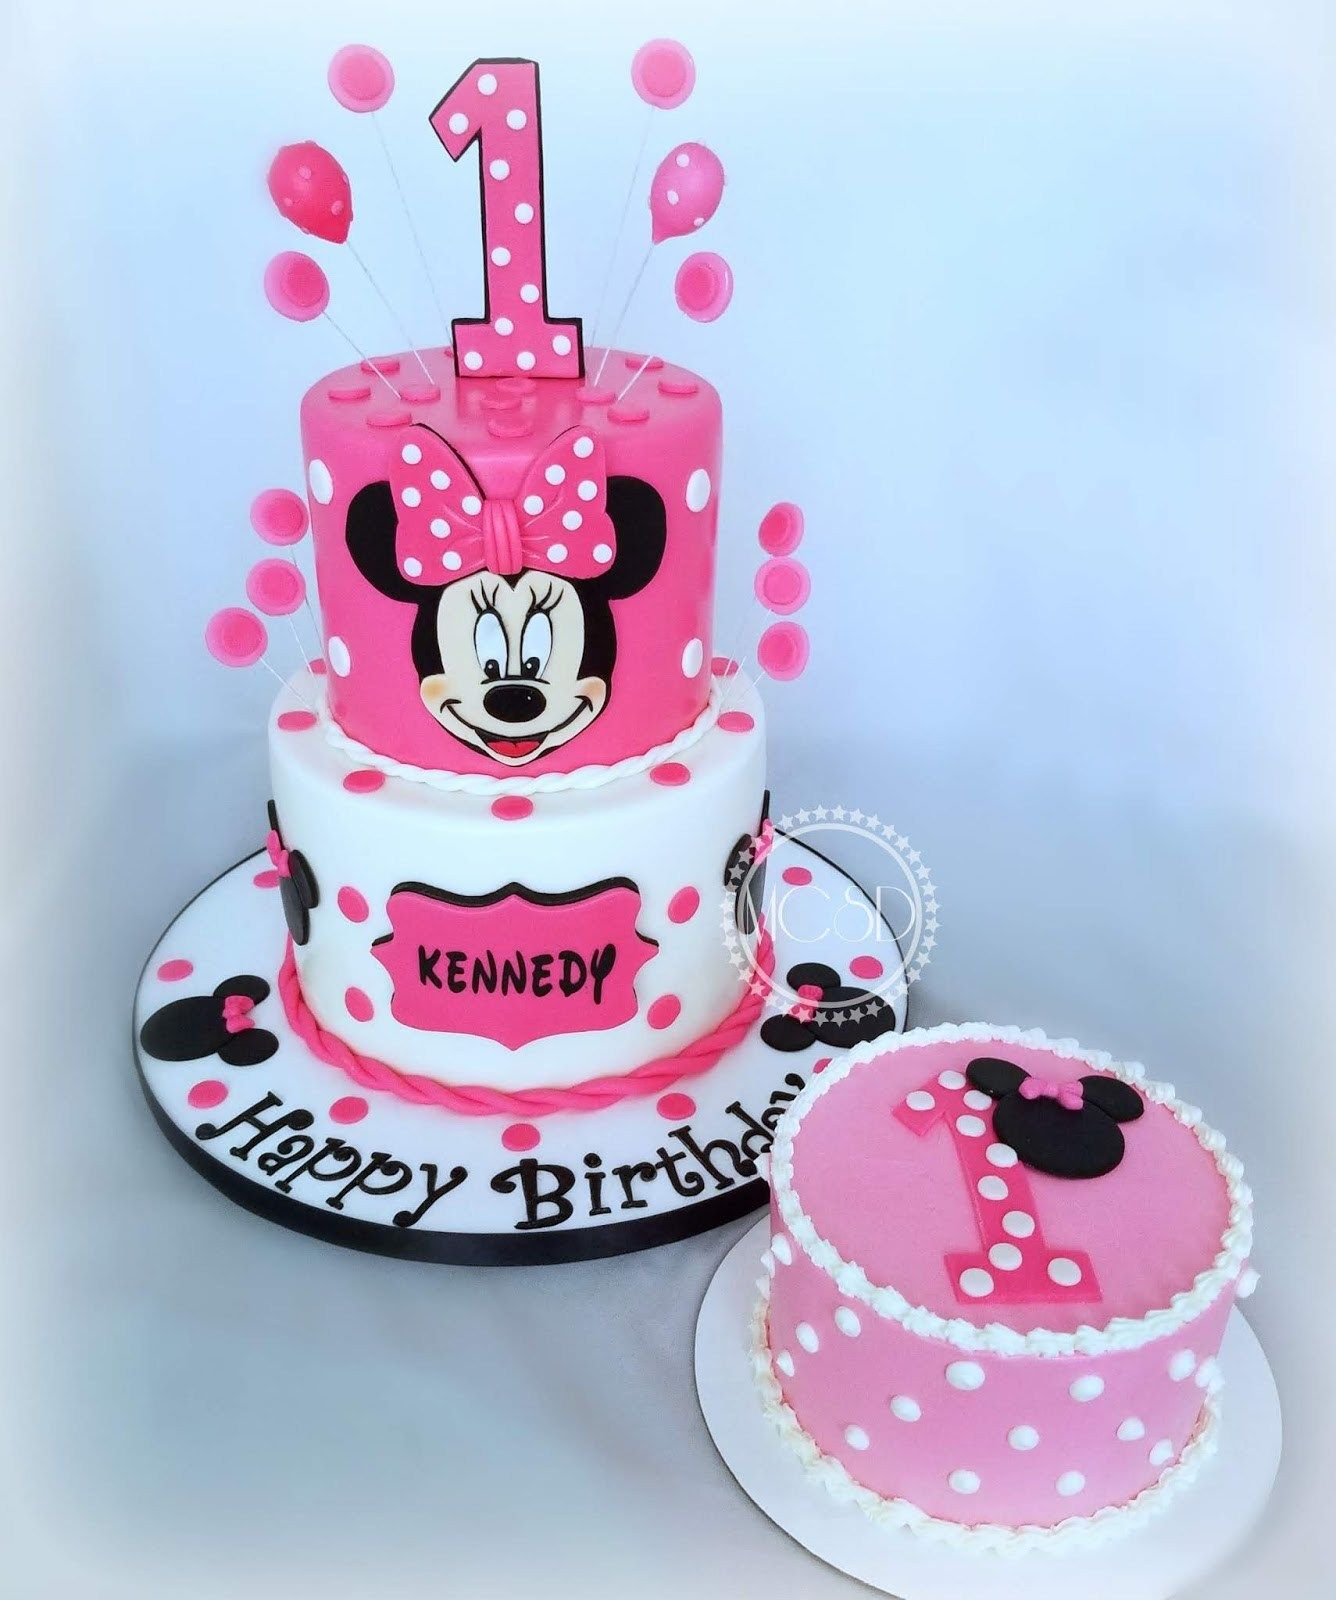 21 Wonderful Photo Of Minnie Mouse Cakes 1st Birthday Entitlementtrap Com Minnie Mouse Birthday Cakes Mini Mouse Birthday Cake Birthday Cake Kids